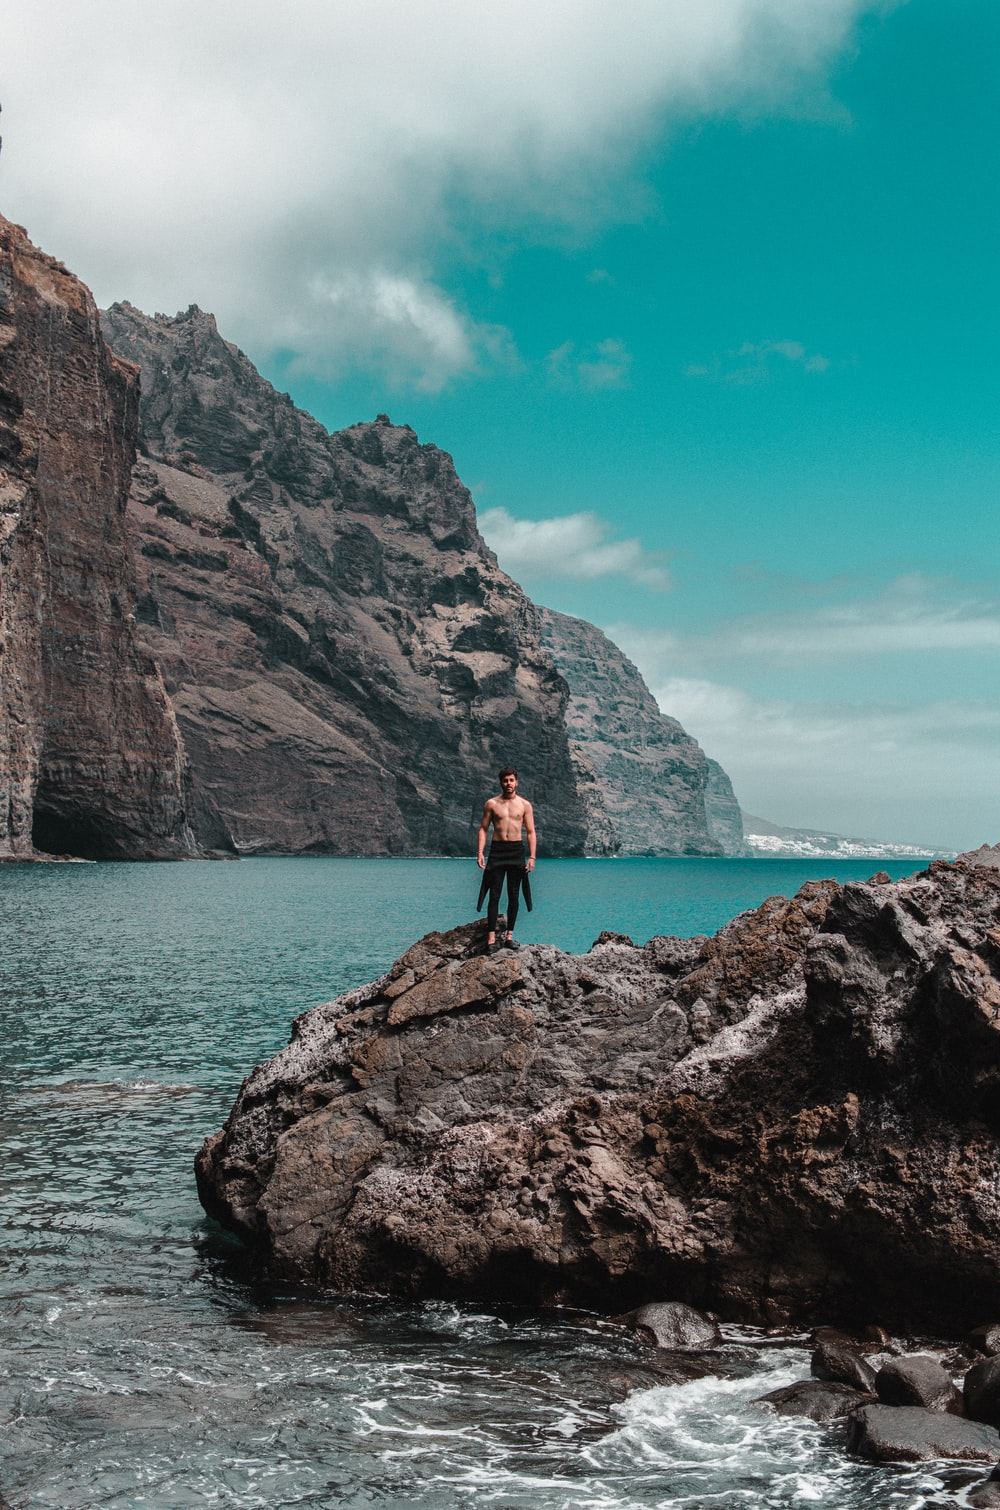 topless man standing on rock formation near ocean during daytime